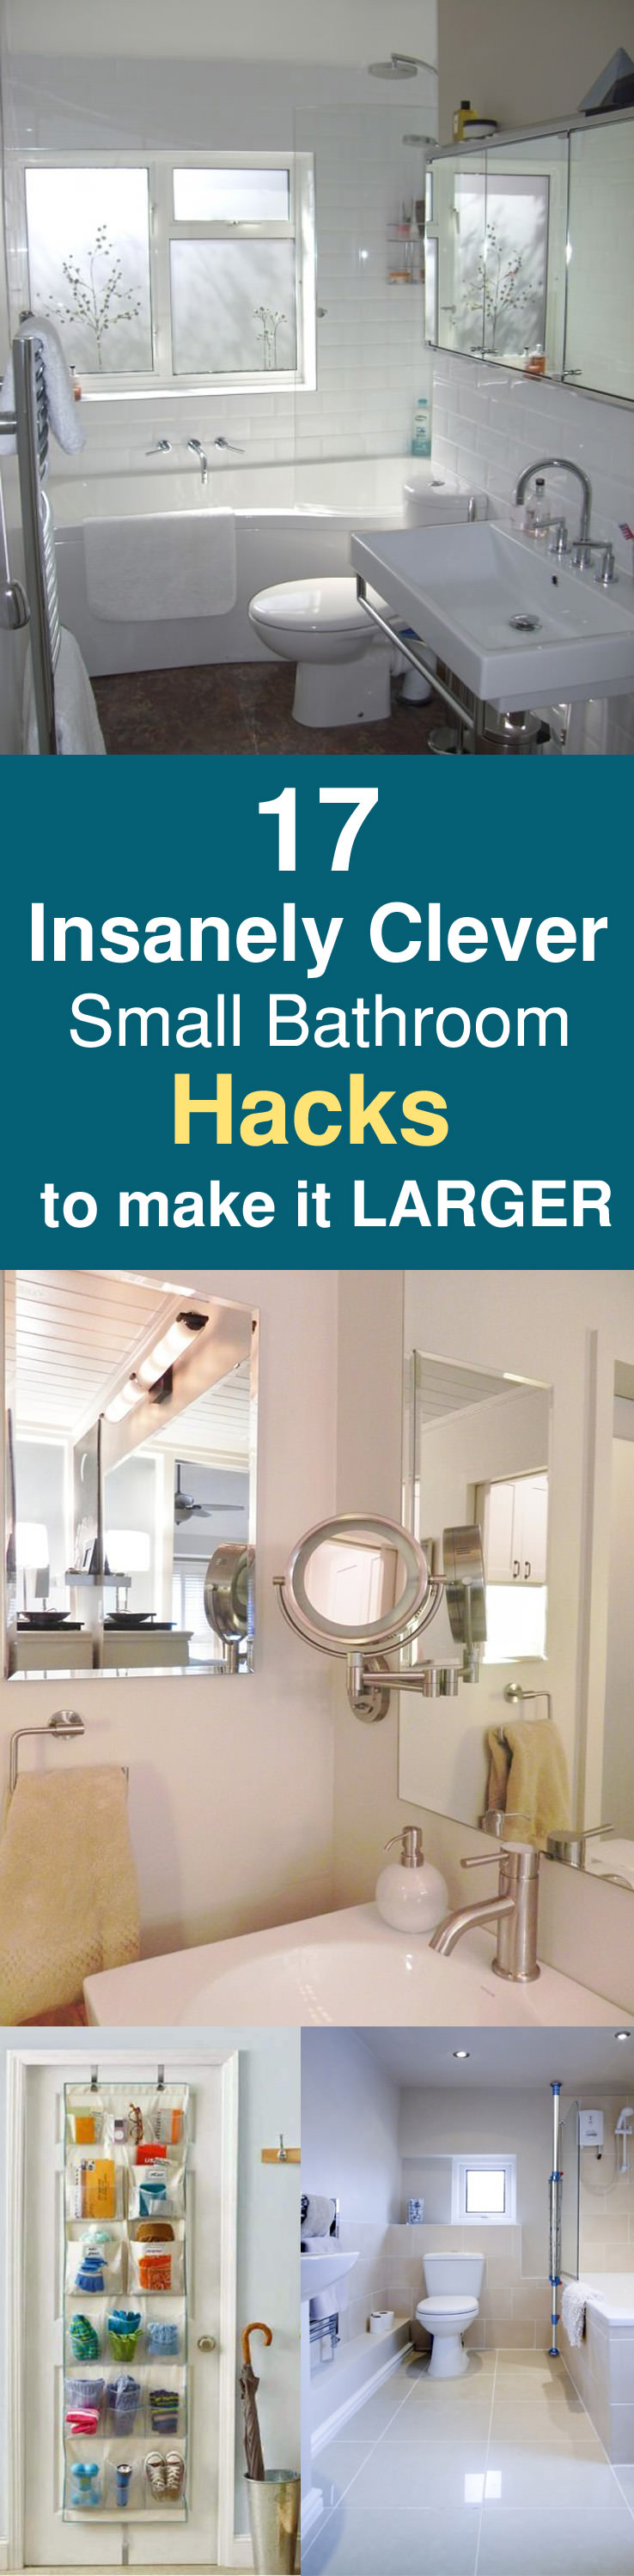 17 insanely clever small bathroom hacks to make it larger for Small bathroom hacks